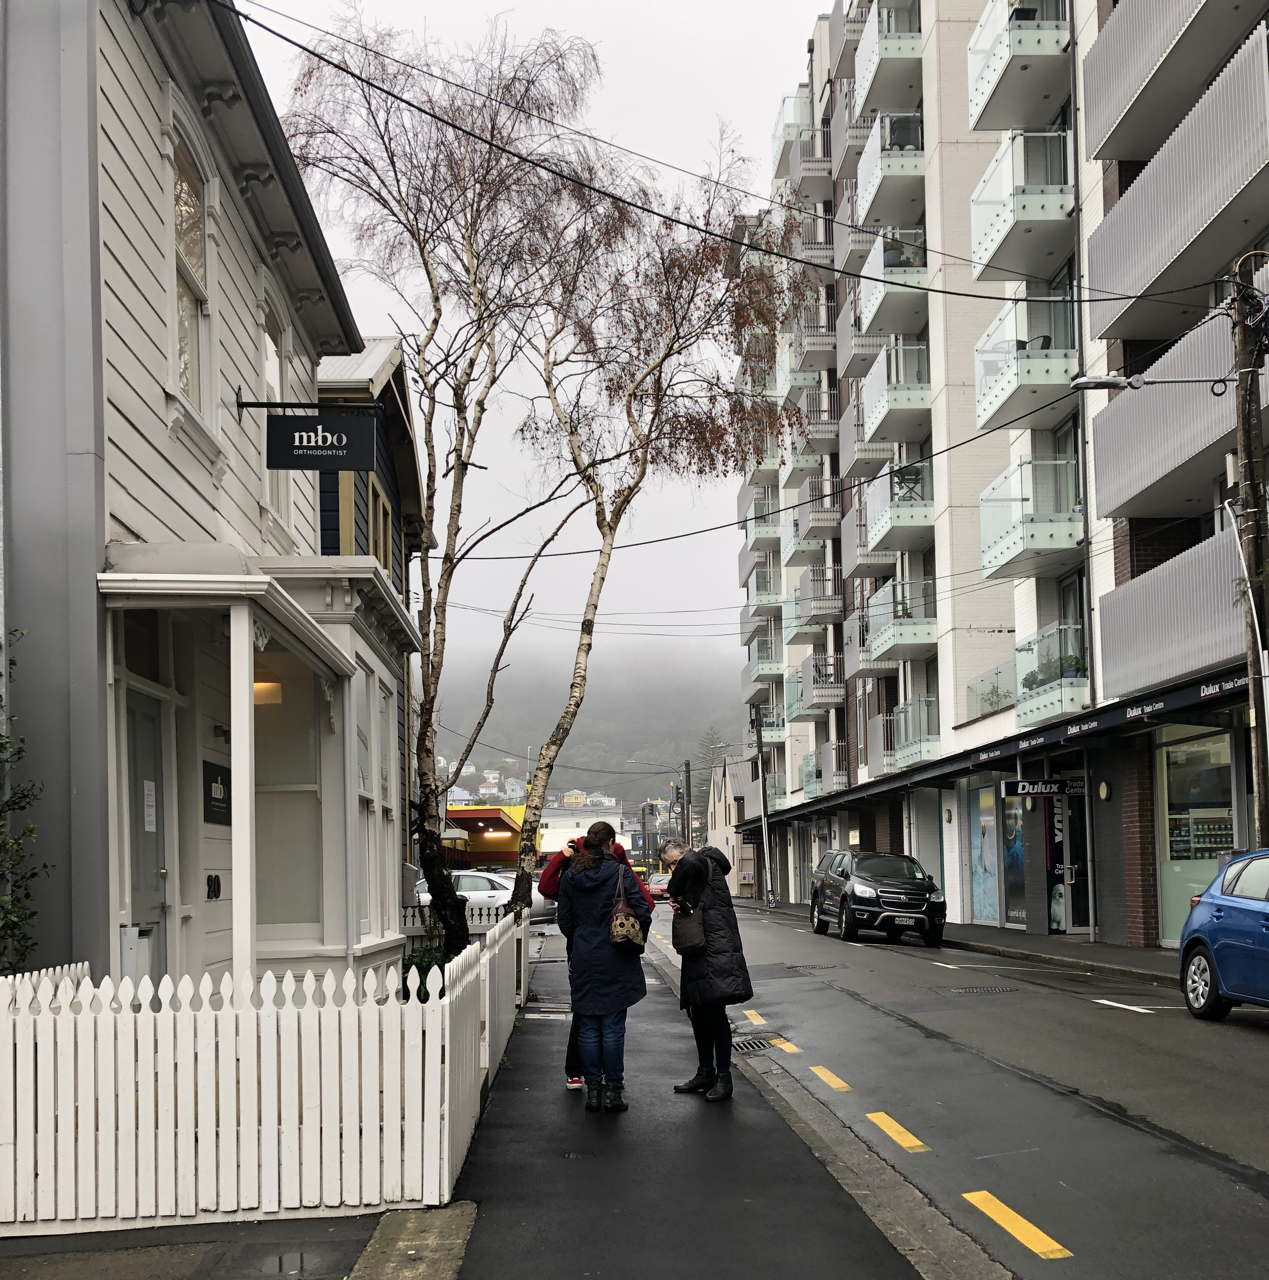 City street on a foggy grey day, people in winter coats